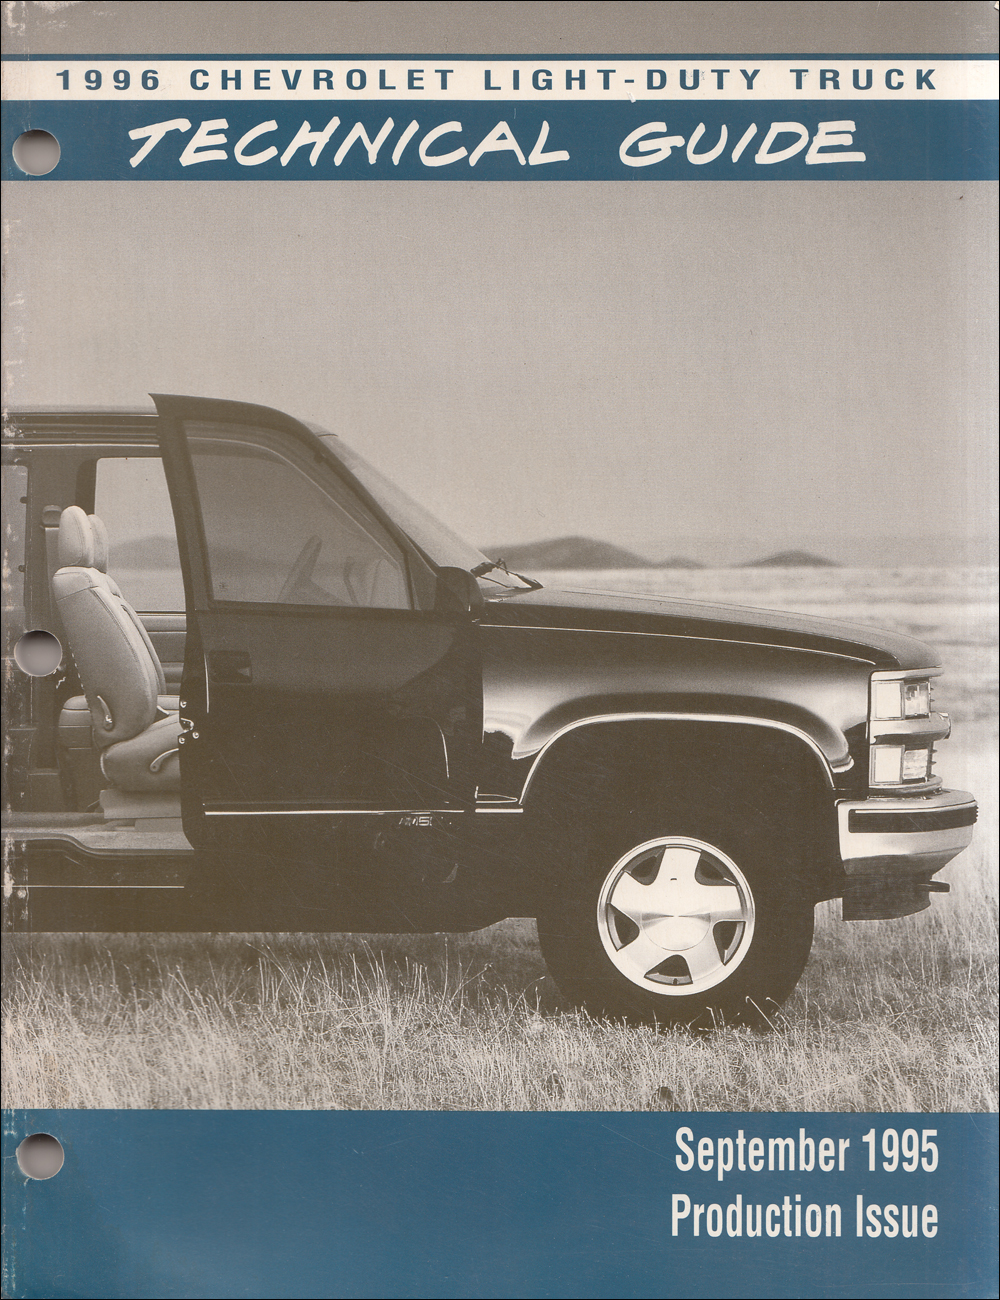 1996 Chevrolet Truck Technical Guide Dealer Album Original Production Issue